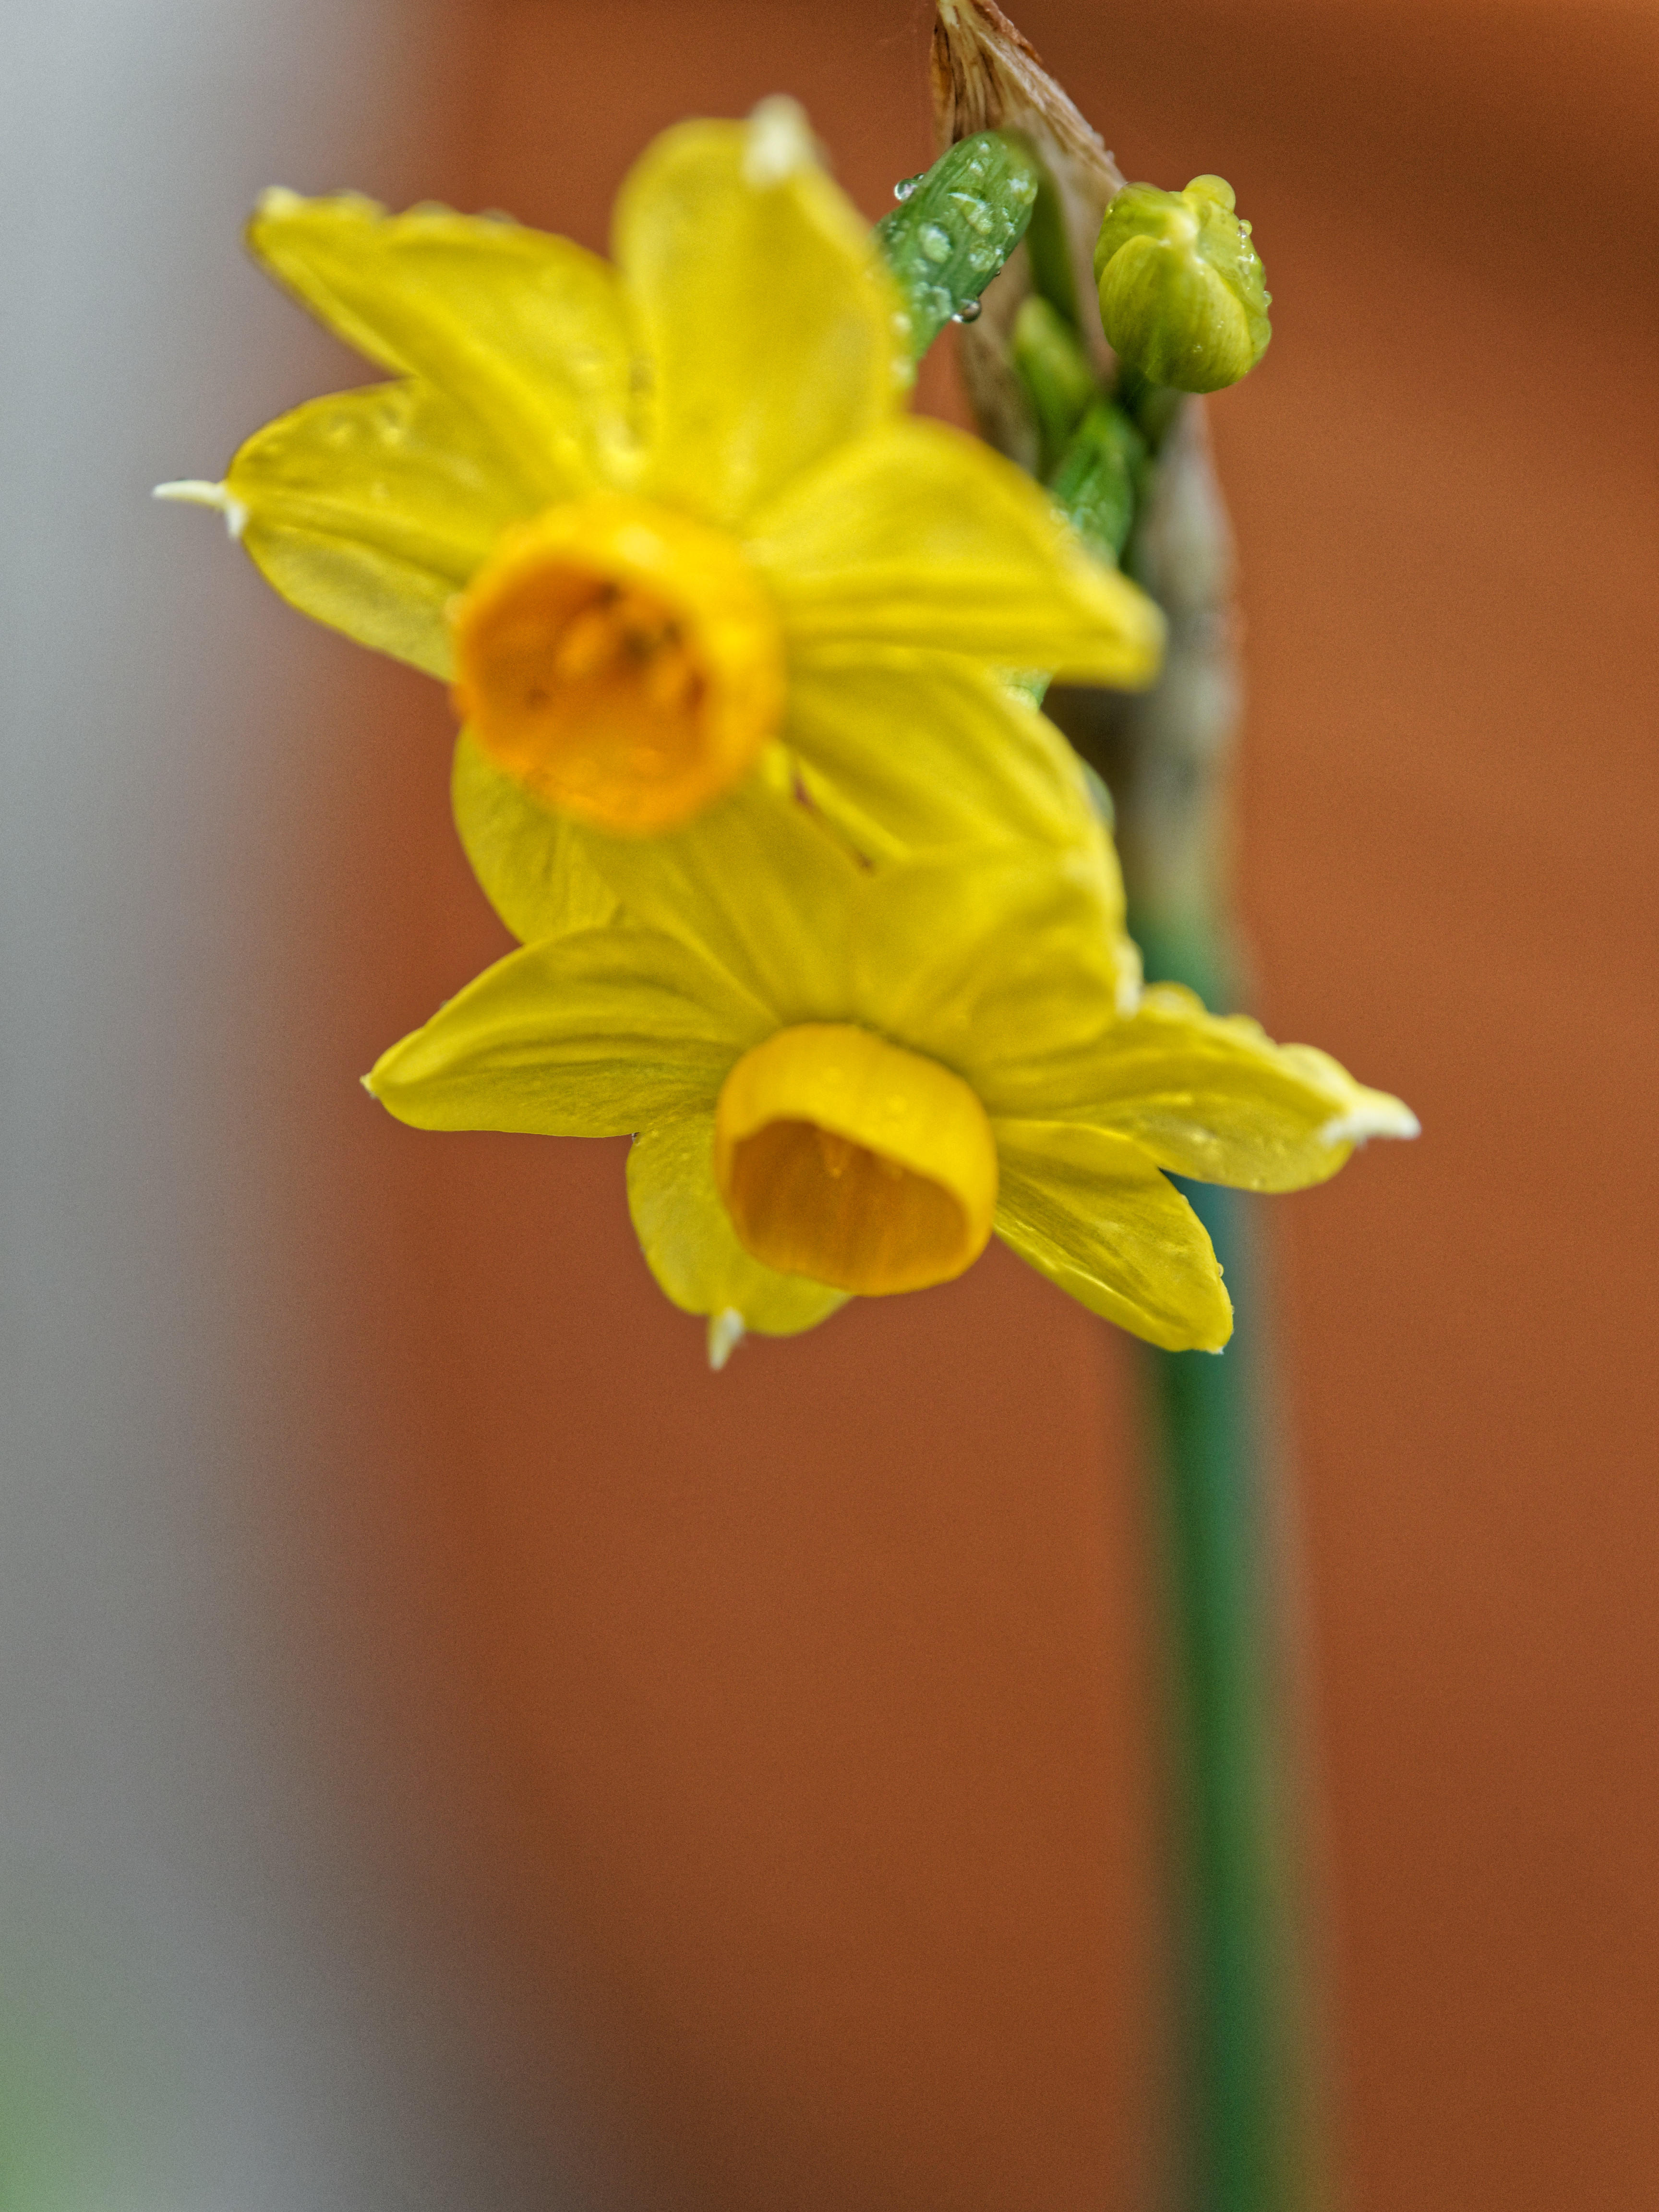 This should be Daffodil-3.jpeg.  Is it missing?